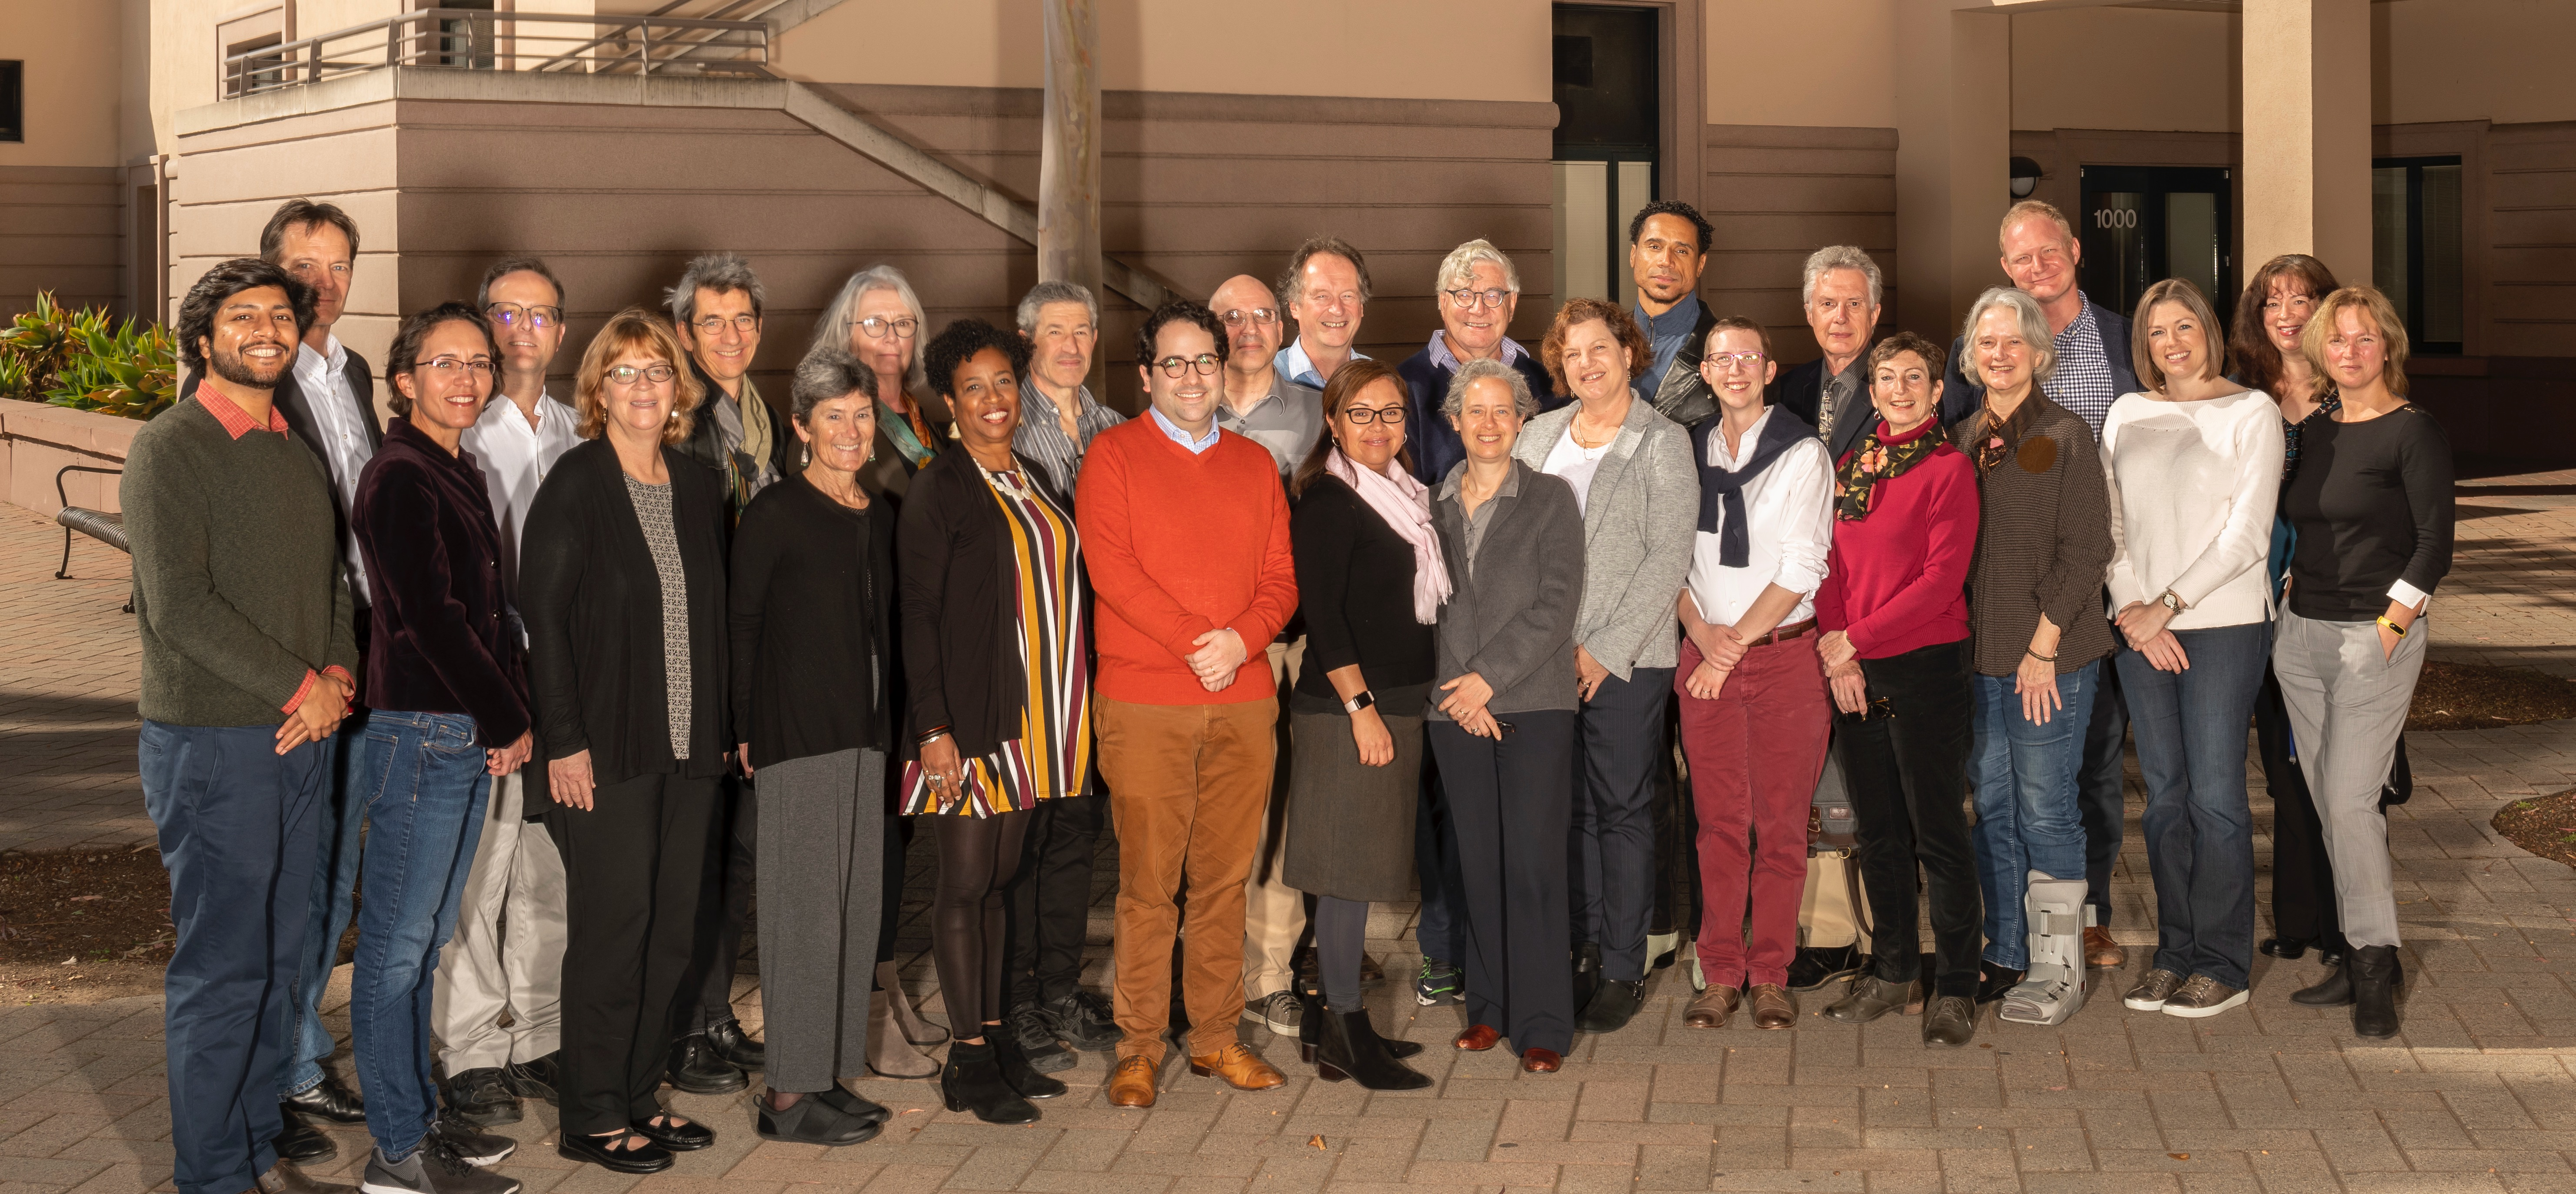 History Department faculty Group Photo